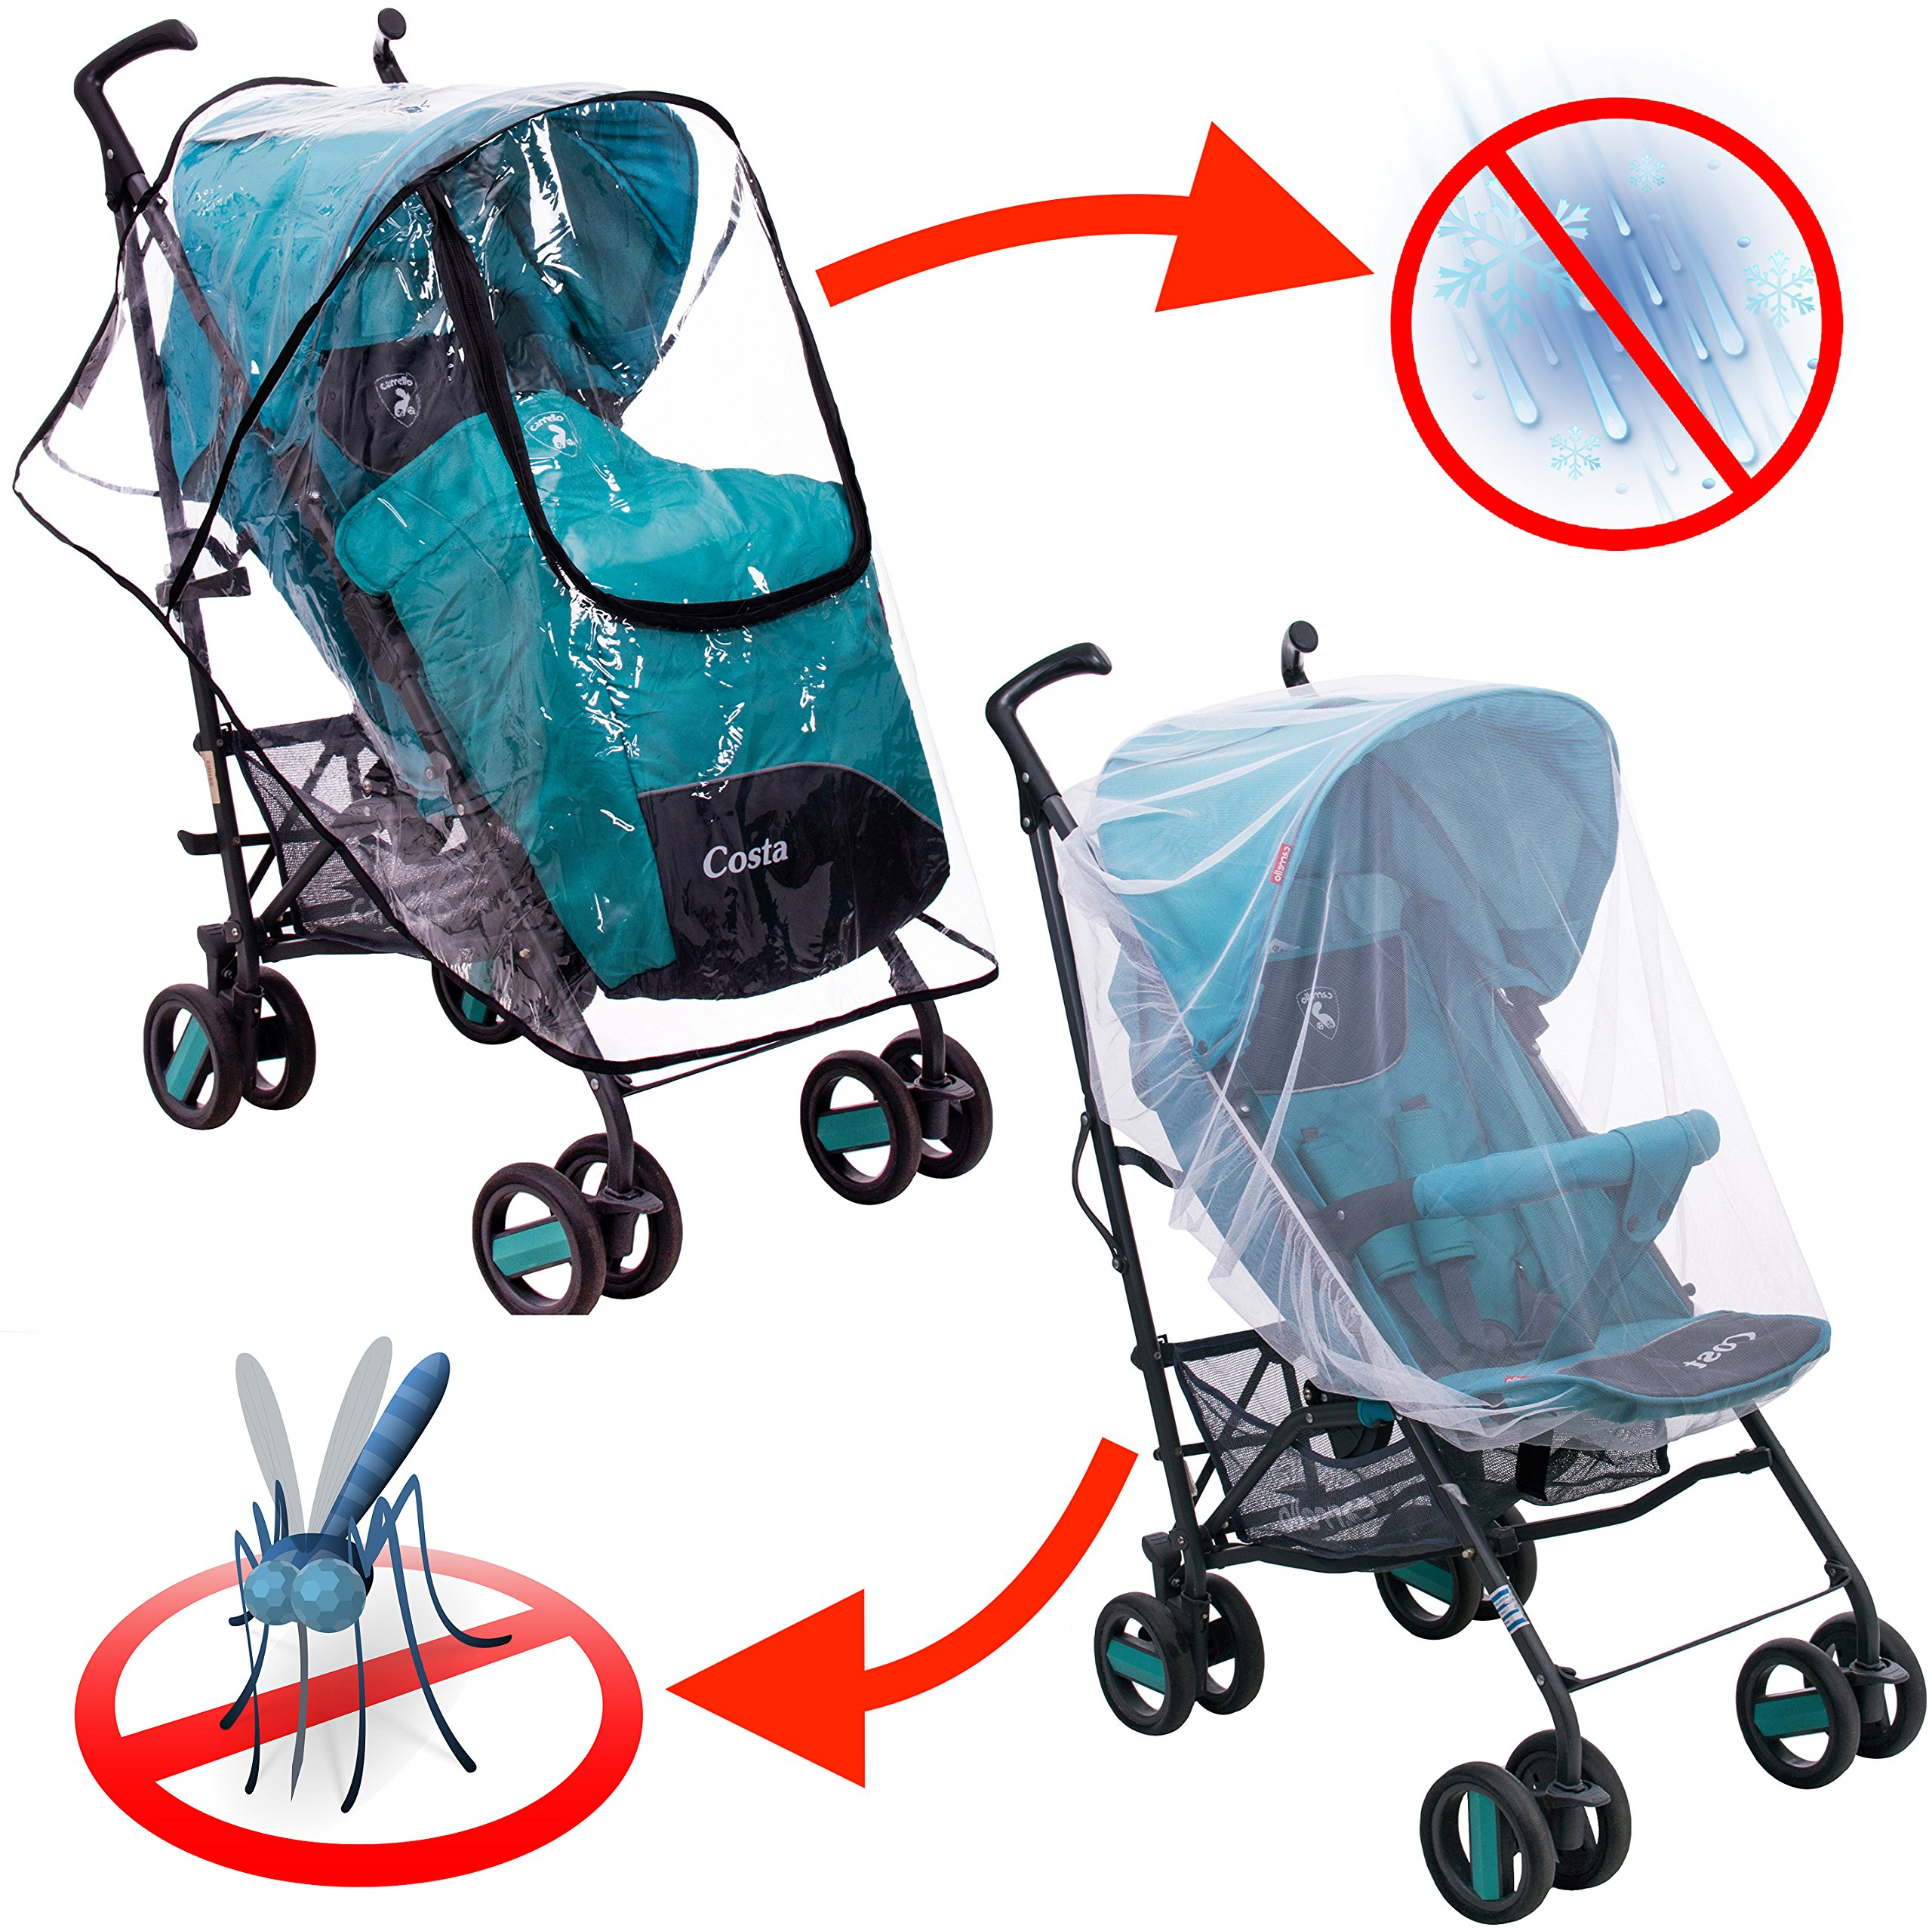 Rain Cover - Mosquito Net - Stroller Rain Cover and Baby Mosquito Net (2-Piece Set) Waterproof, Windproof Protection - Travel-Friendly, Outdoor Use - Easy to Install and Remove by SofiaToys